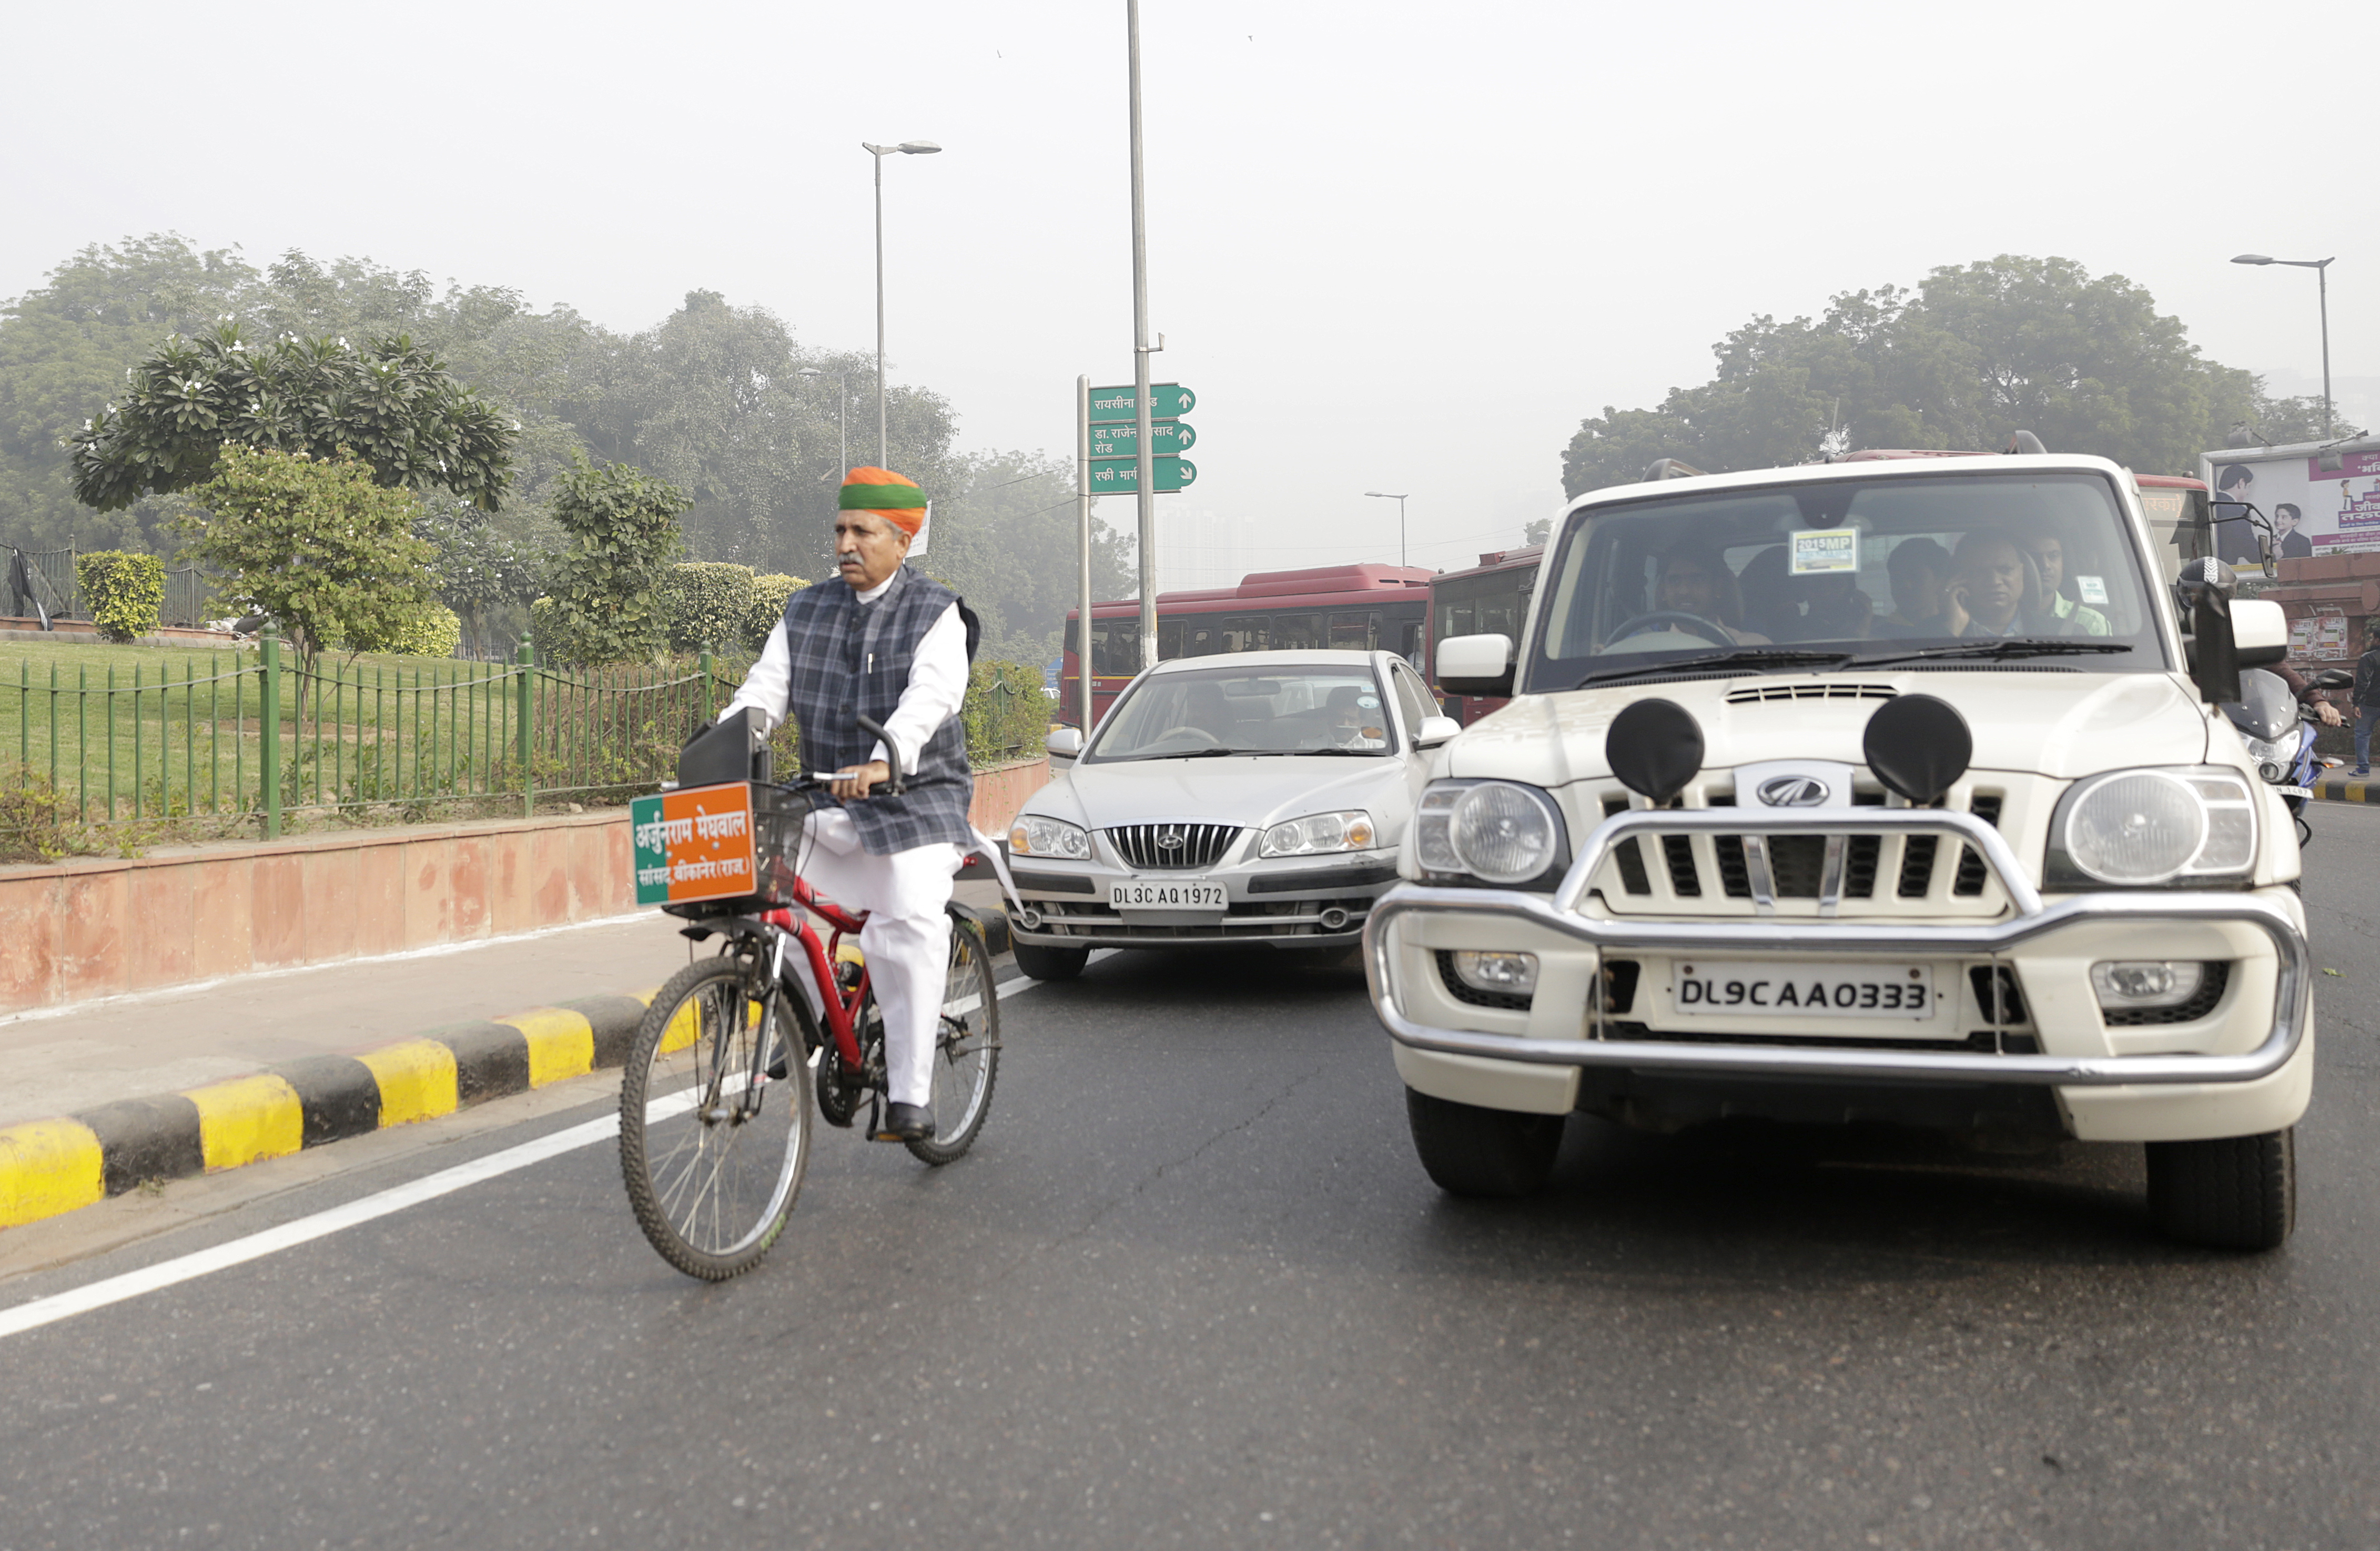 Meghwal says that if Delhi adds bicycle tracks, people will be motivated to choose them over other modes of transport. He adds that he has placed this suggestion before the police commissioner